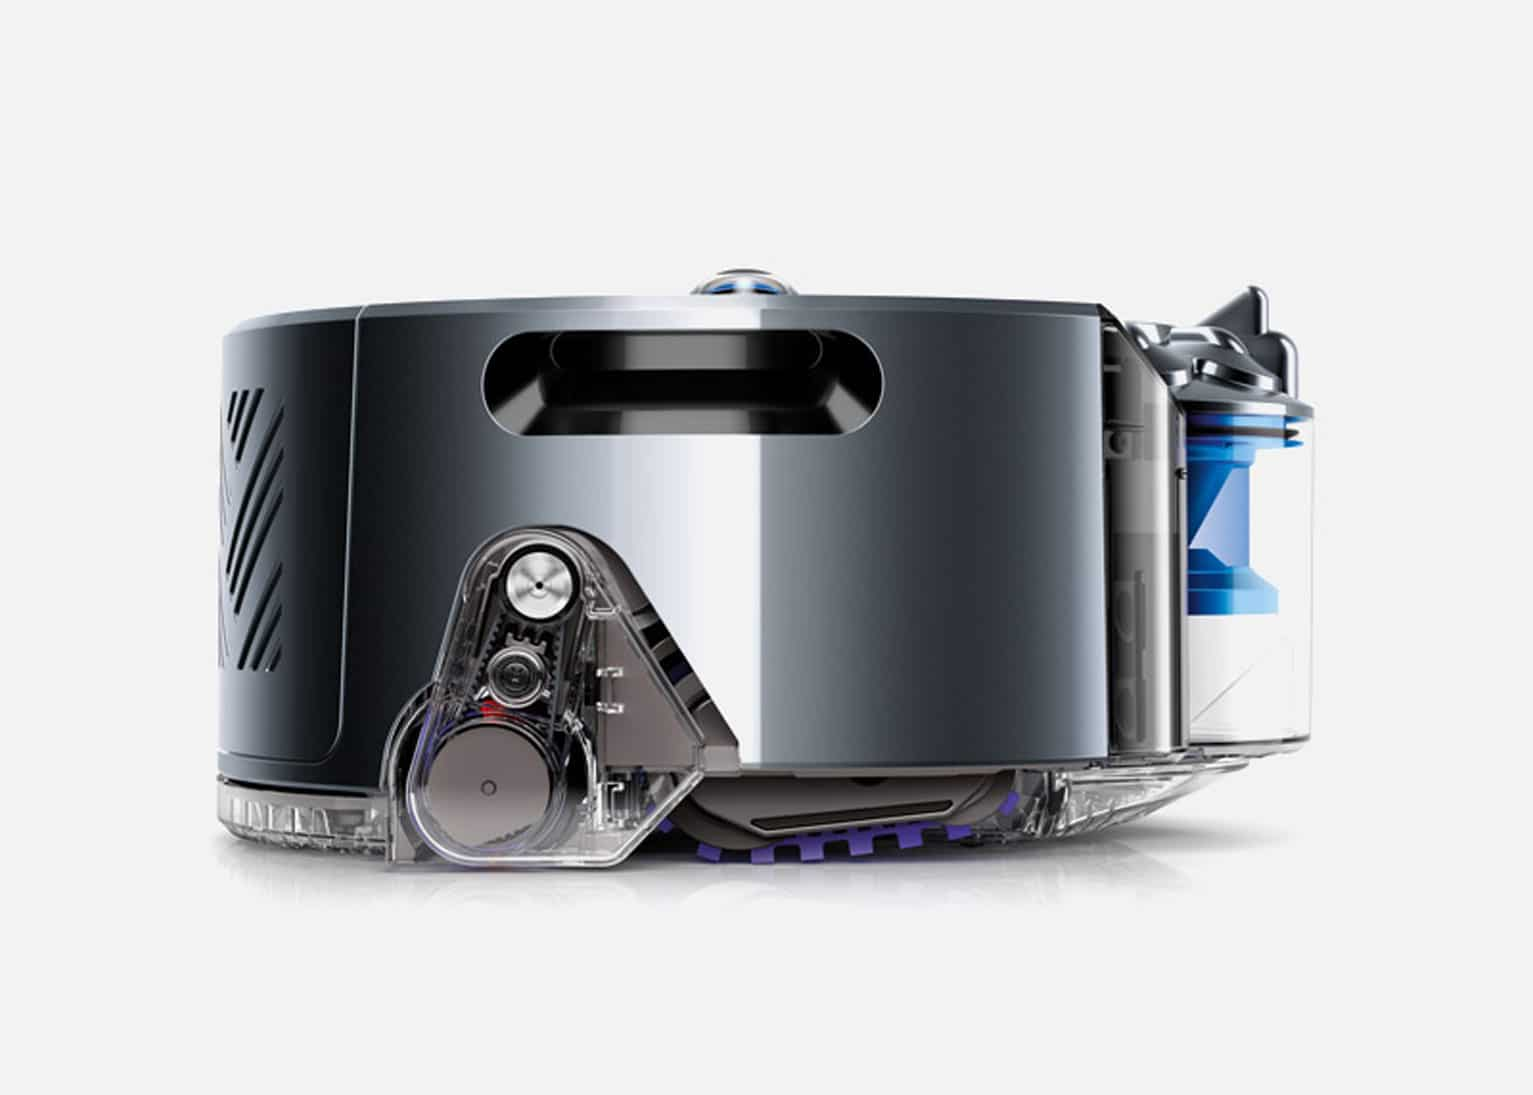 the dyson 360 eye robot cleaning vacuum ireviews. Black Bedroom Furniture Sets. Home Design Ideas